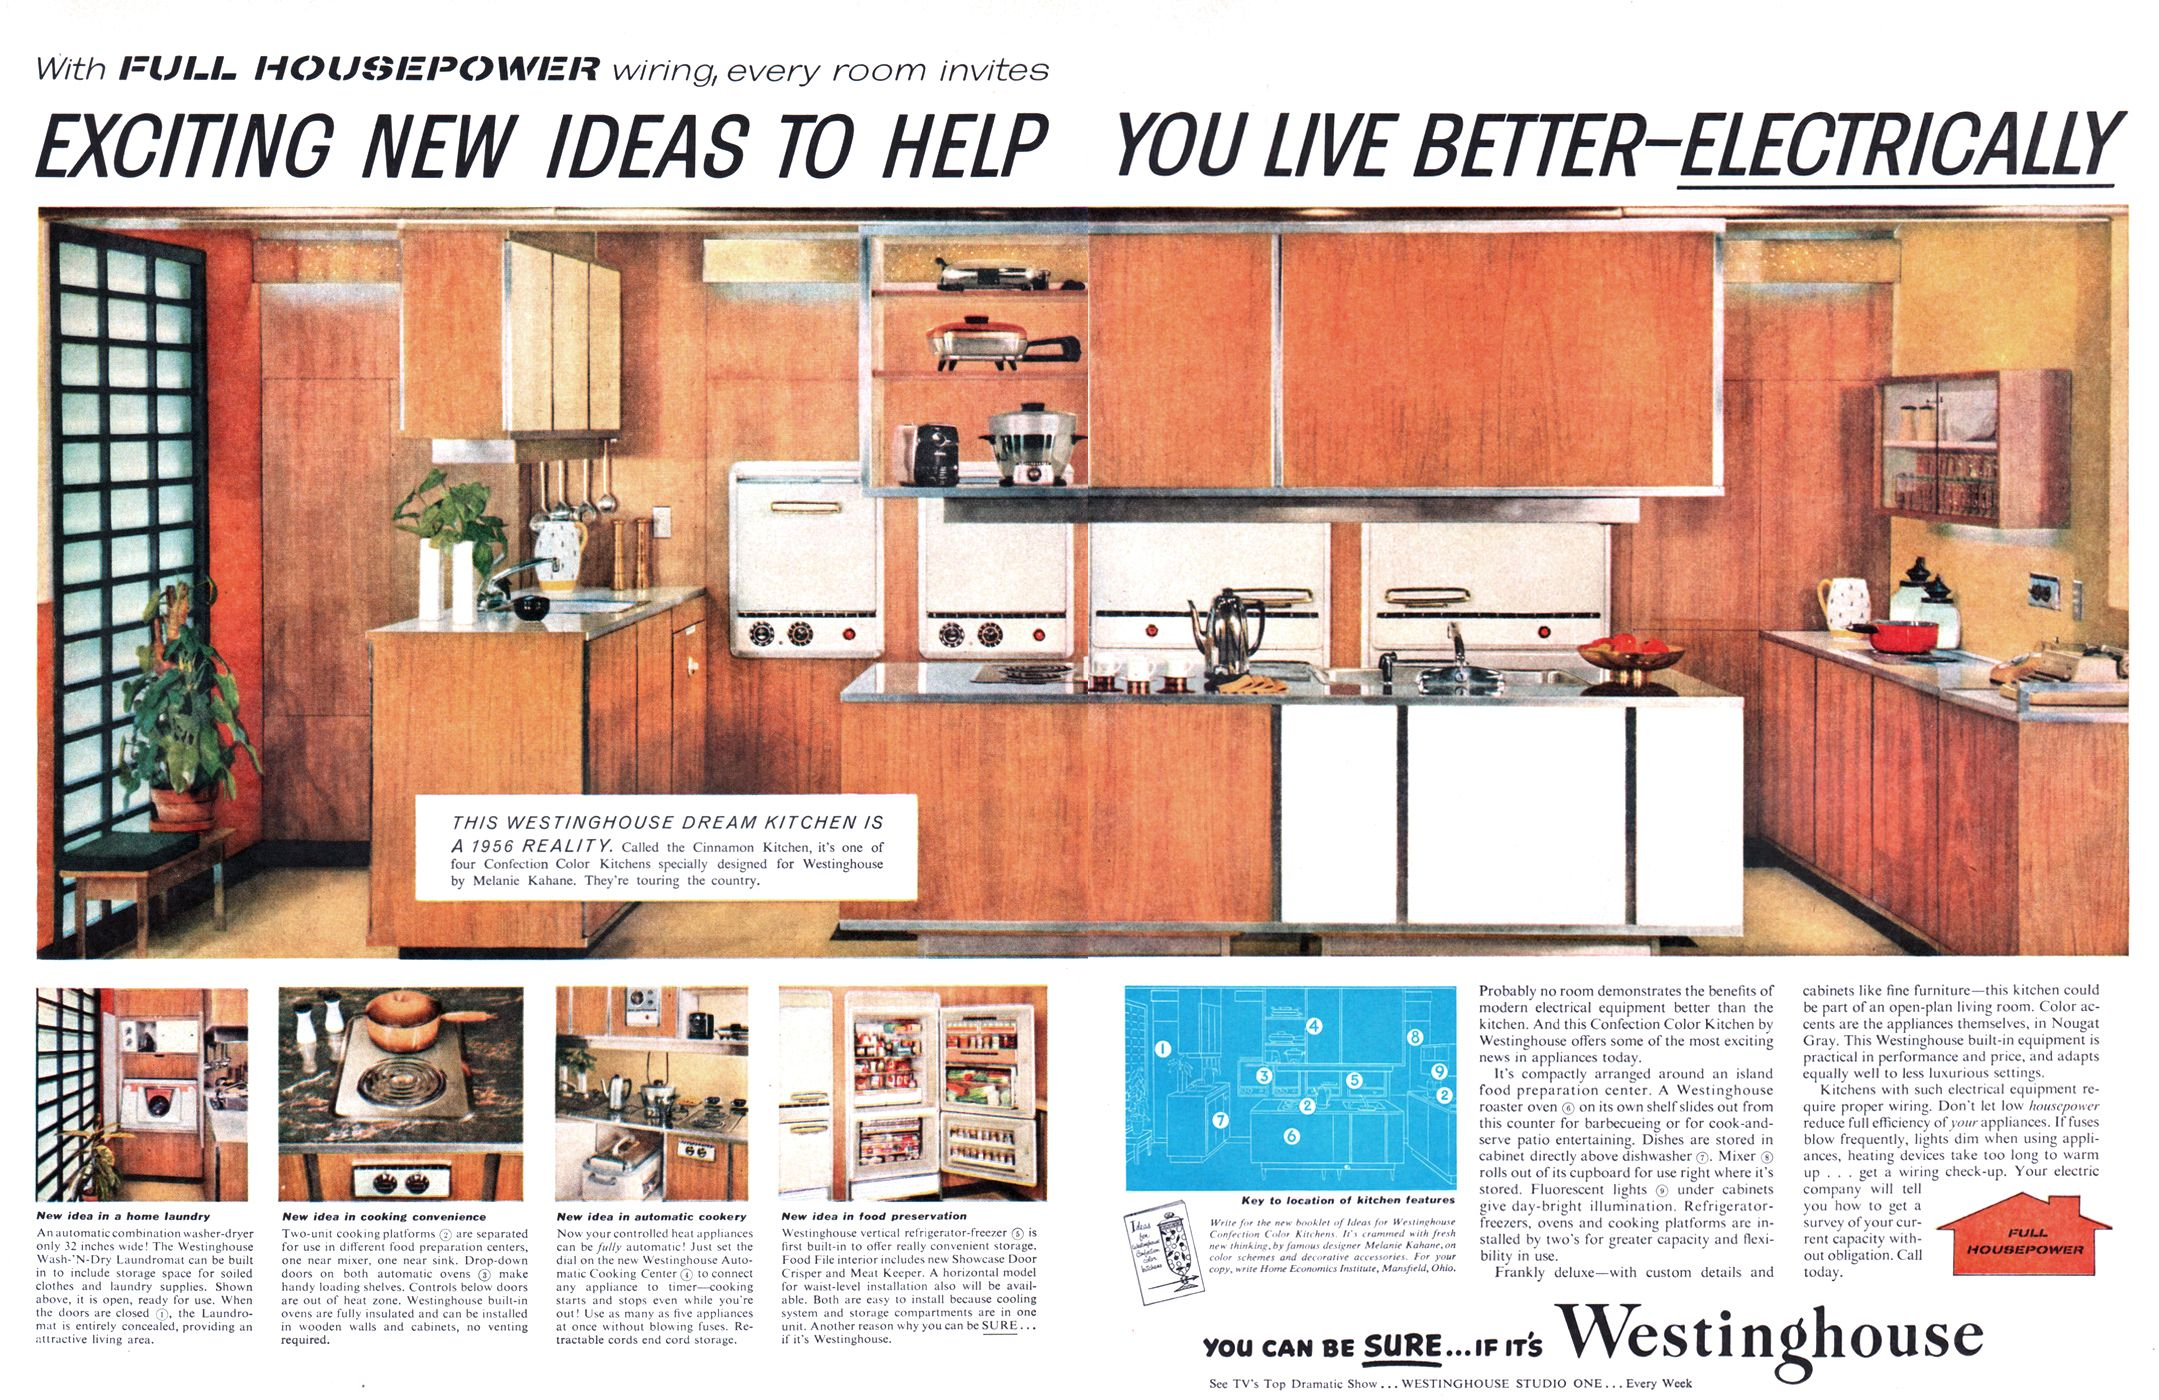 Pin By Chris G On Vintage Appliance Ads Pinterest Appliances Wiring Zones Kitchen